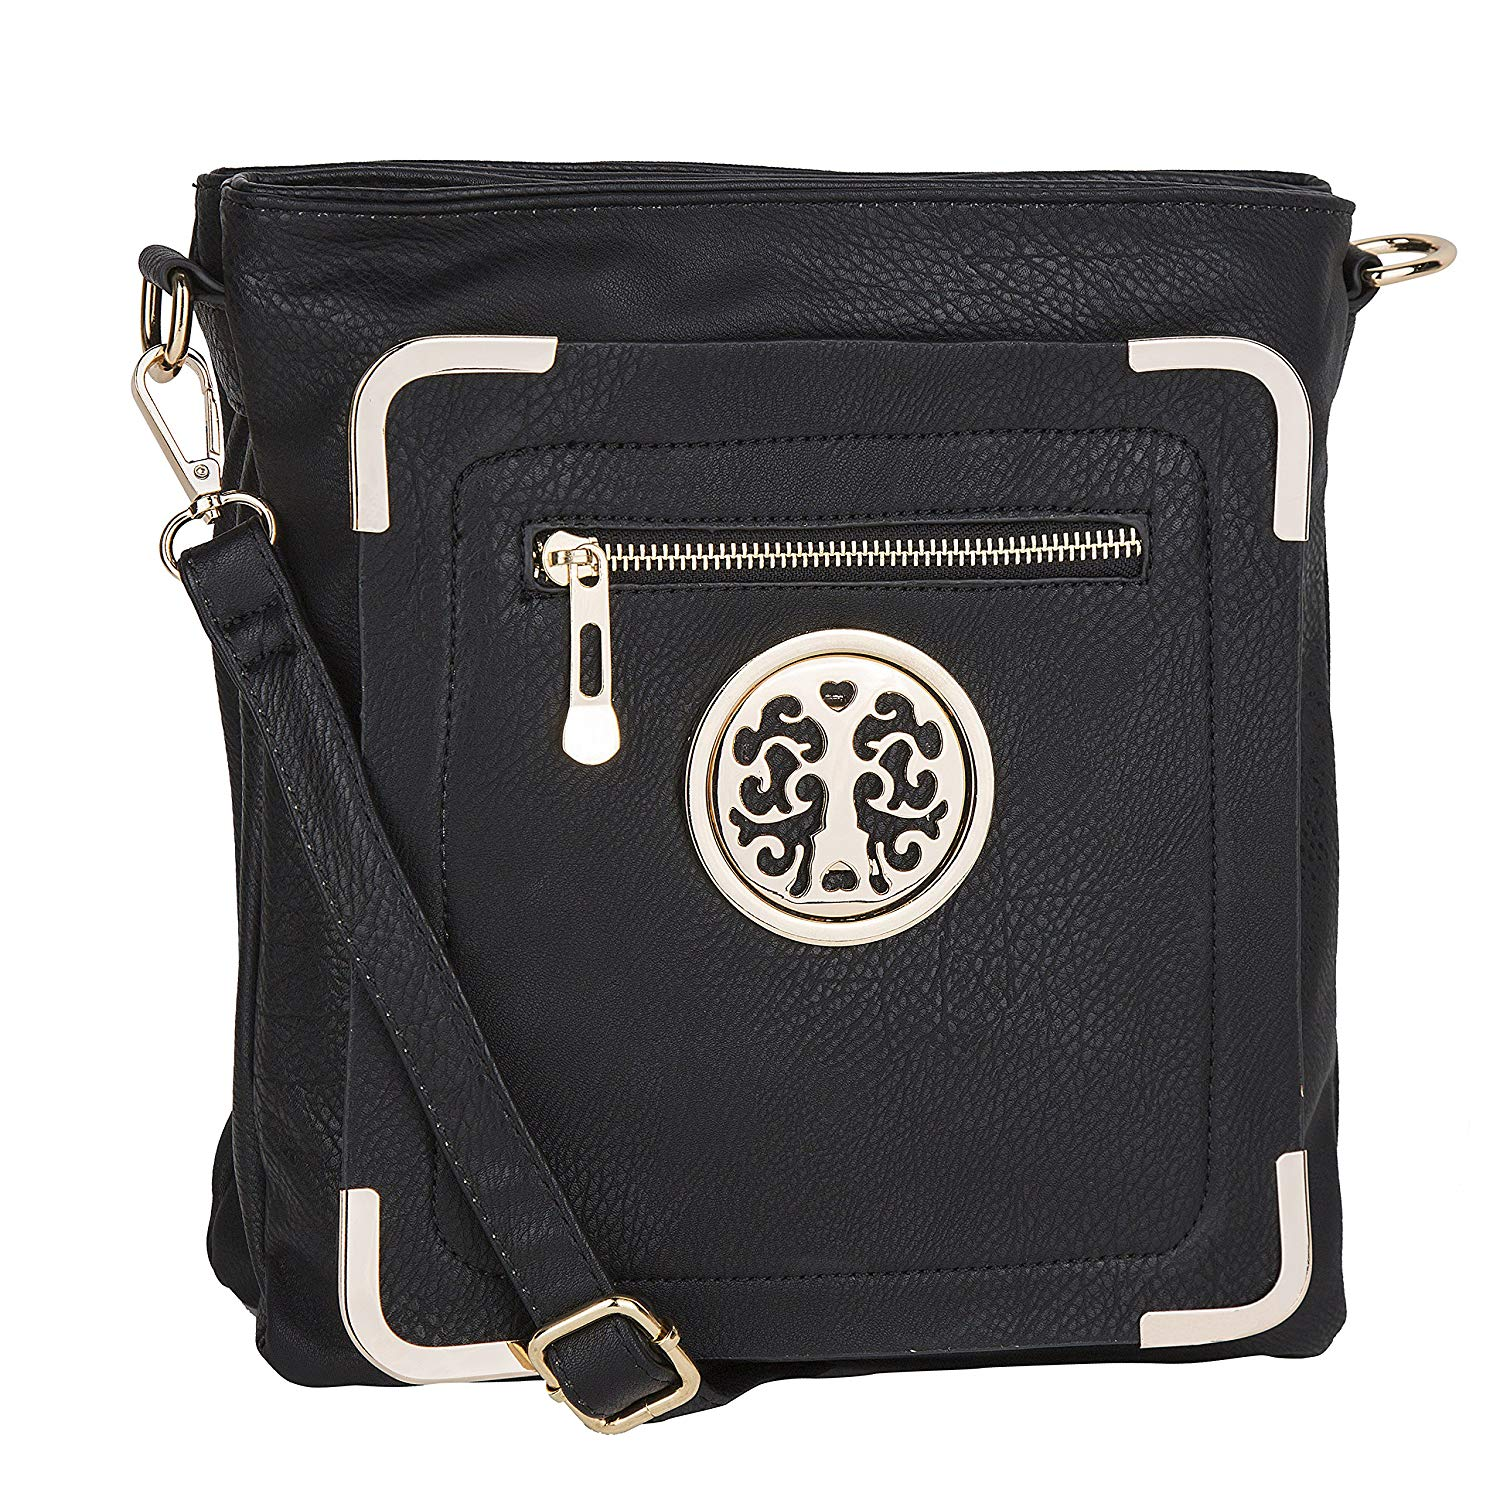 Crossbody Bag ~ Crossbody Purse ~ Multiple Pocket Crossbody Bag ~ Crossbody Purse with Adjustable Shoulder Strap ~ Crossbody Bag for Woman ~ Zip-top Closure Crossbody Purse ~ ViCtoRia'S~FaShiOn Crossbody Bag By MKF Collection (Black)